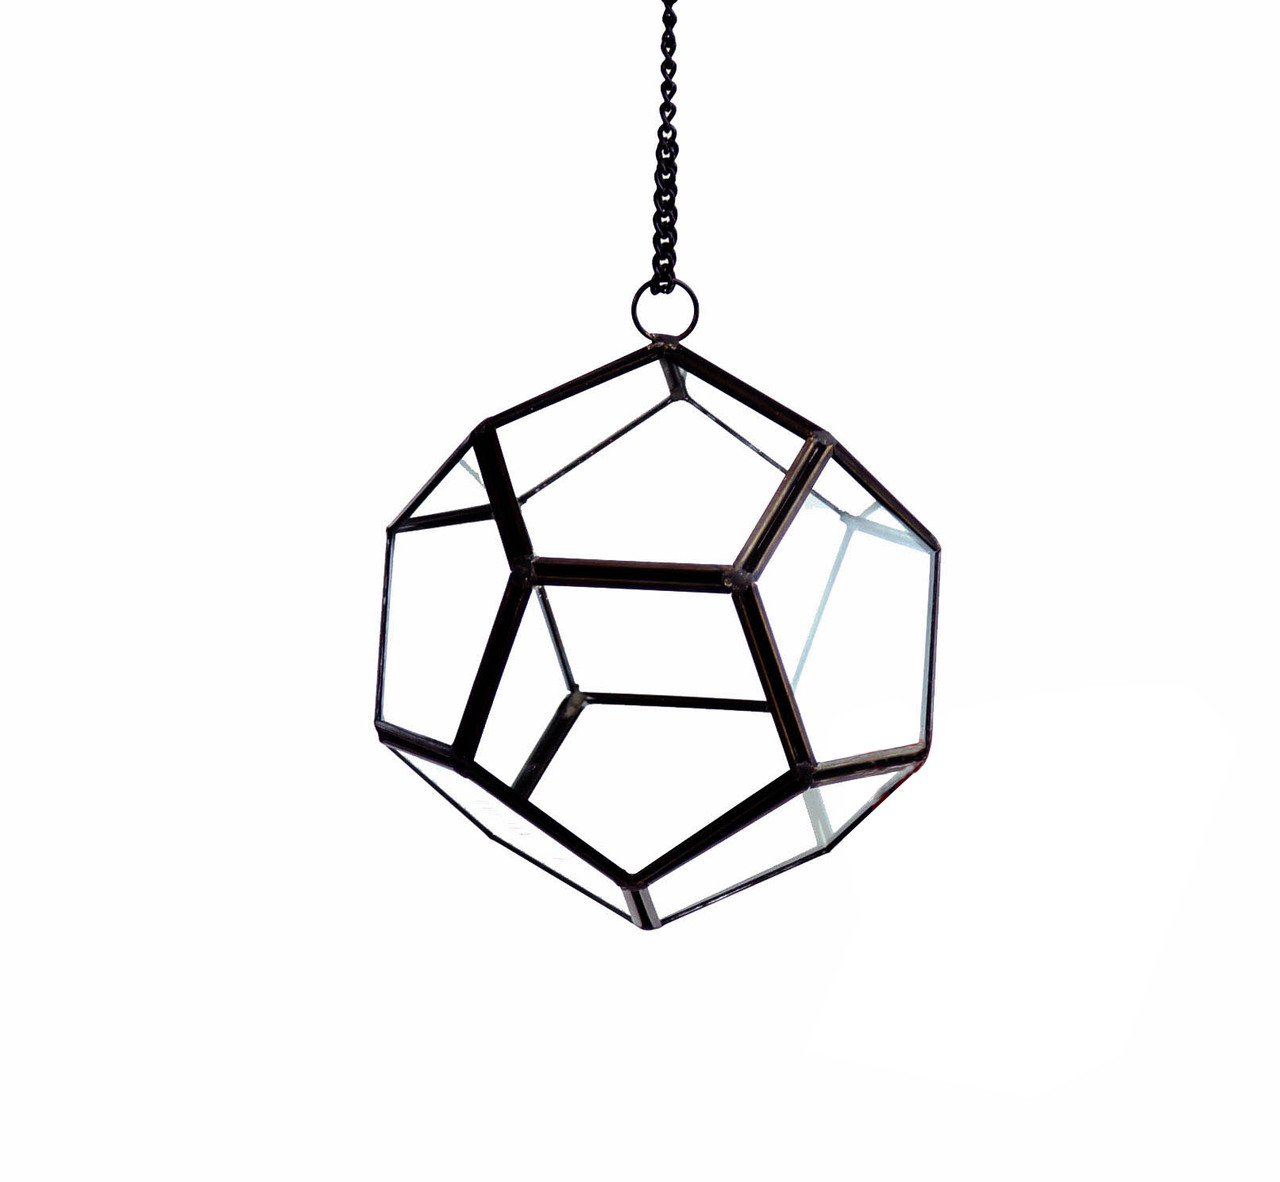 Small Gold Prism Geometric Glass Terrarium Dodecahedron 12 Pieces Eventswholesale Com